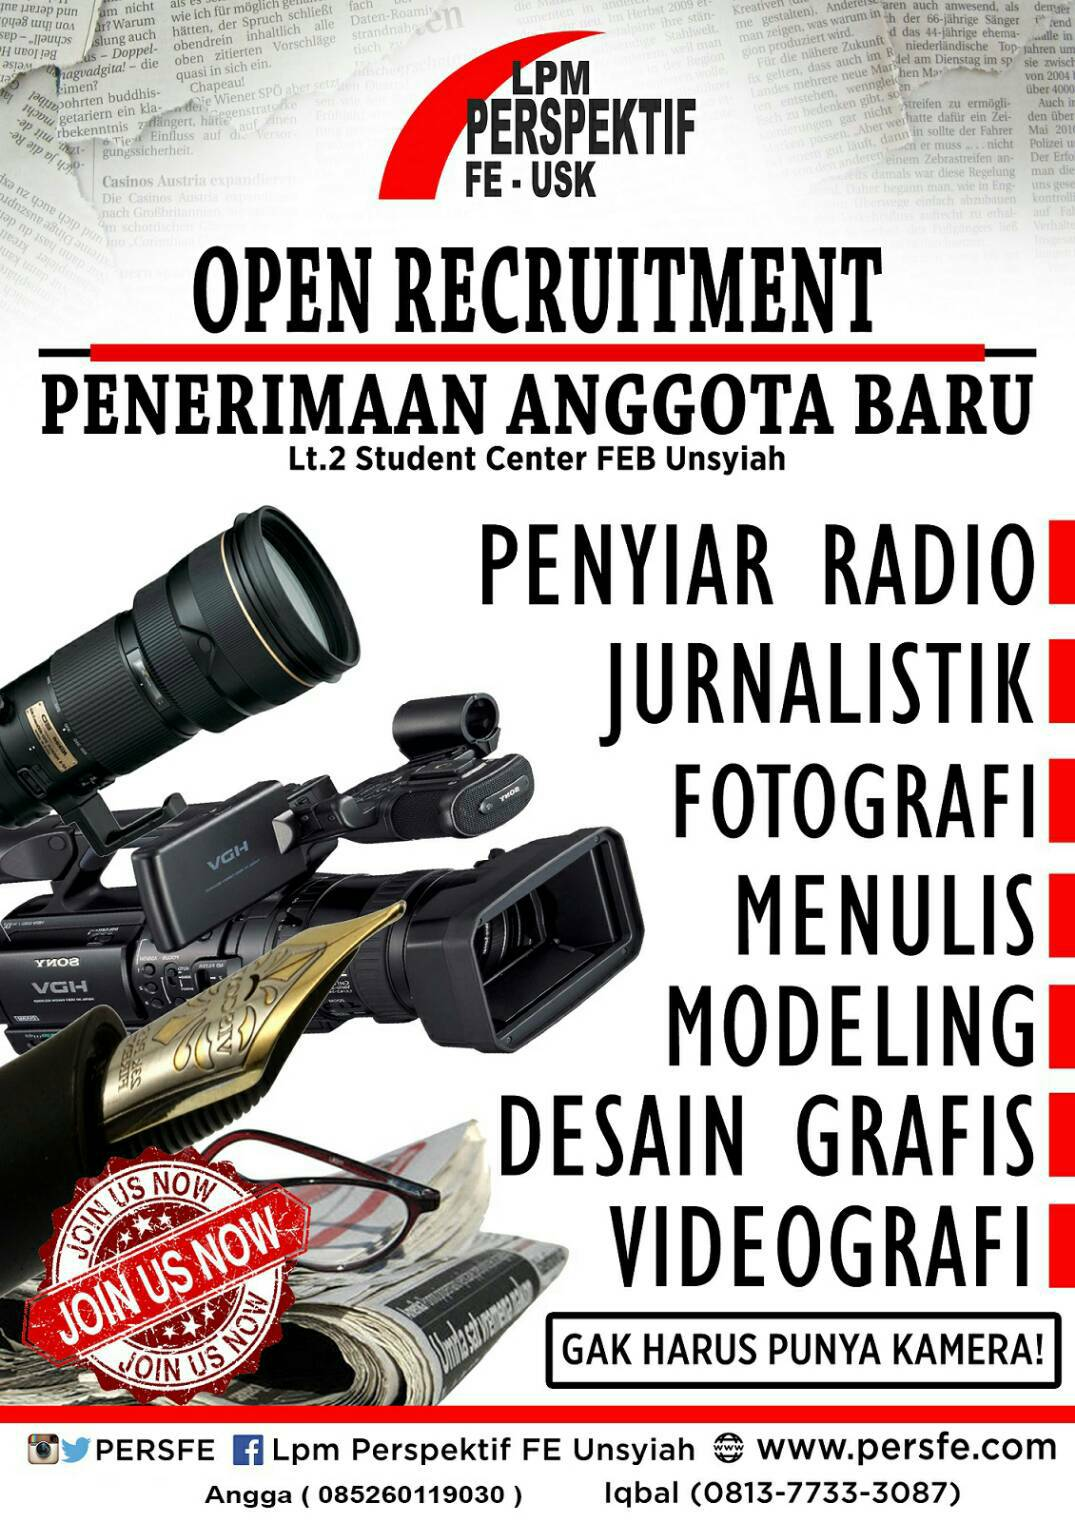 Open Recruitment UKM LPM Perspektif 2016